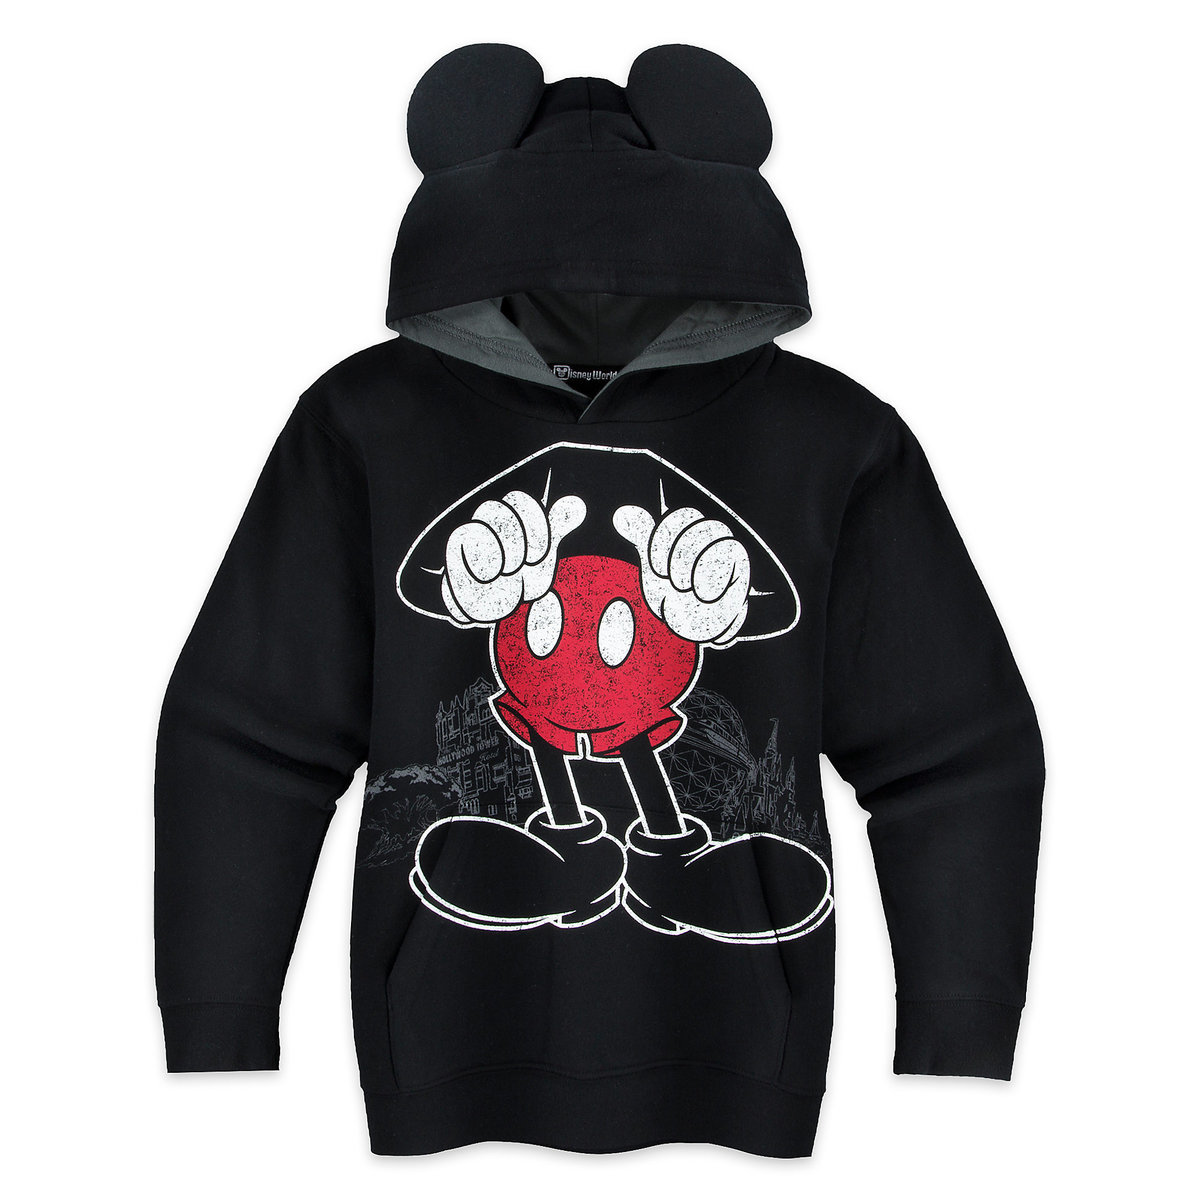 f8d5bbbe6146 Add to My Lists. Disney Boys Hoodie - I Am Mickey Mouse Body Pullover Hoodie